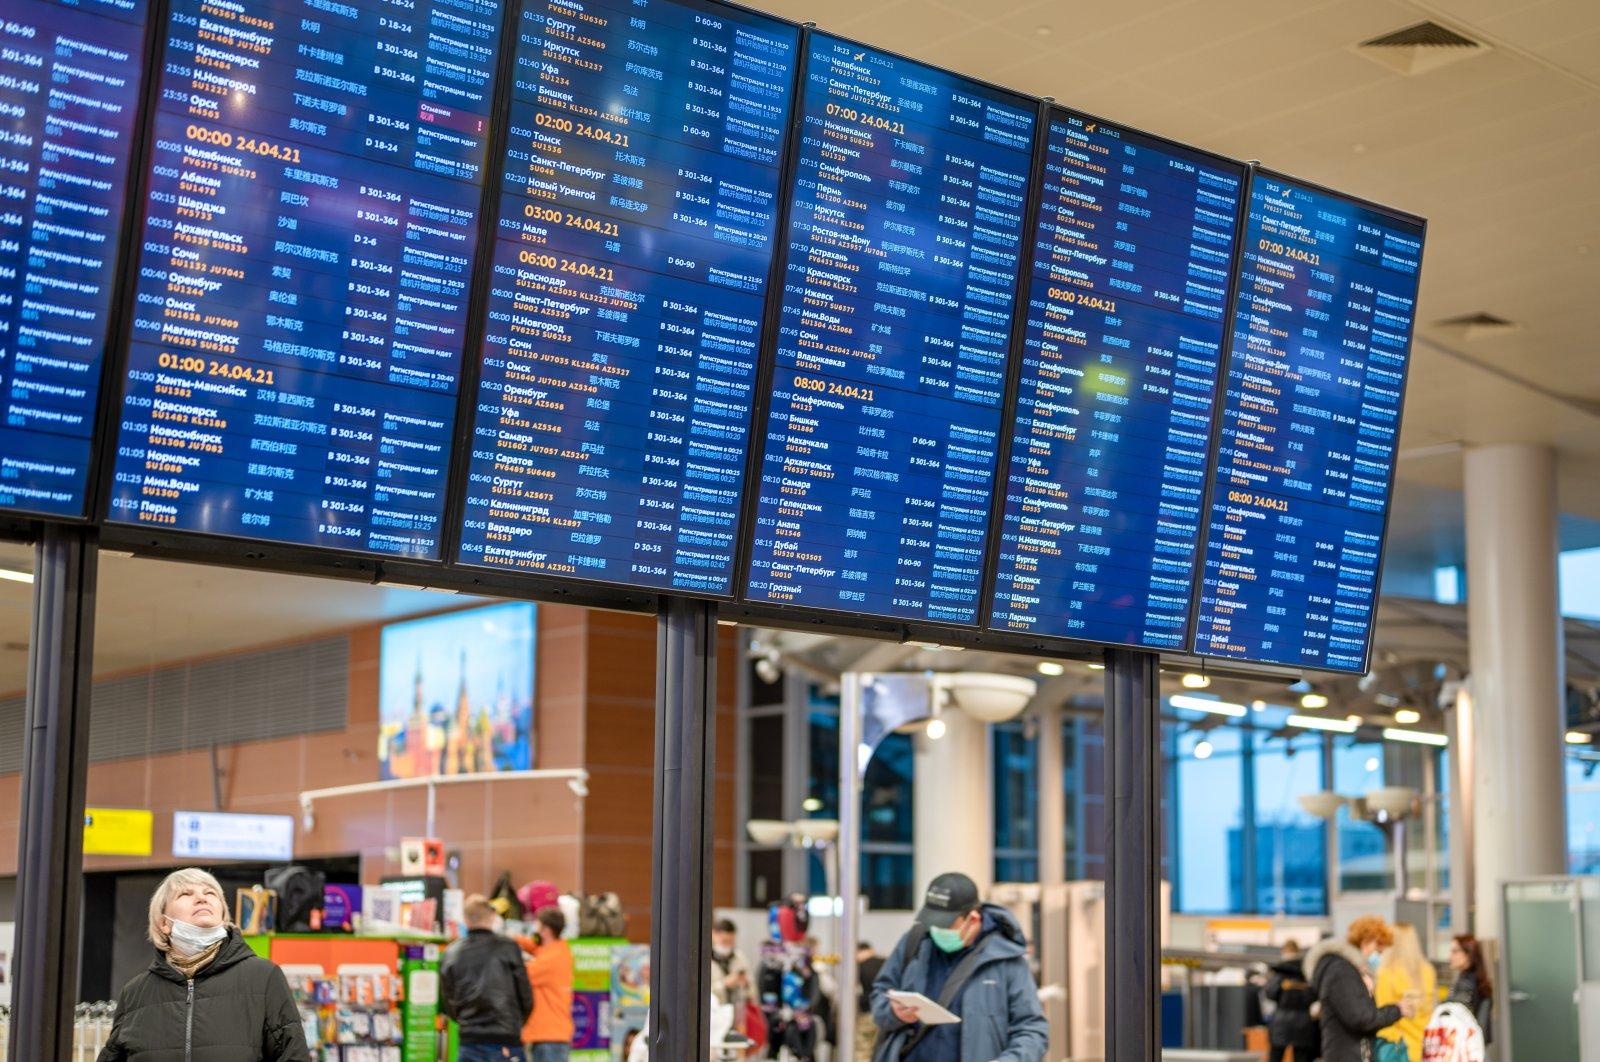 The schedule of departure flights at a terminal in Sheremetyevo International Airport, Moscow, Russia, May 7, 2021. (Shutterstock Photo)